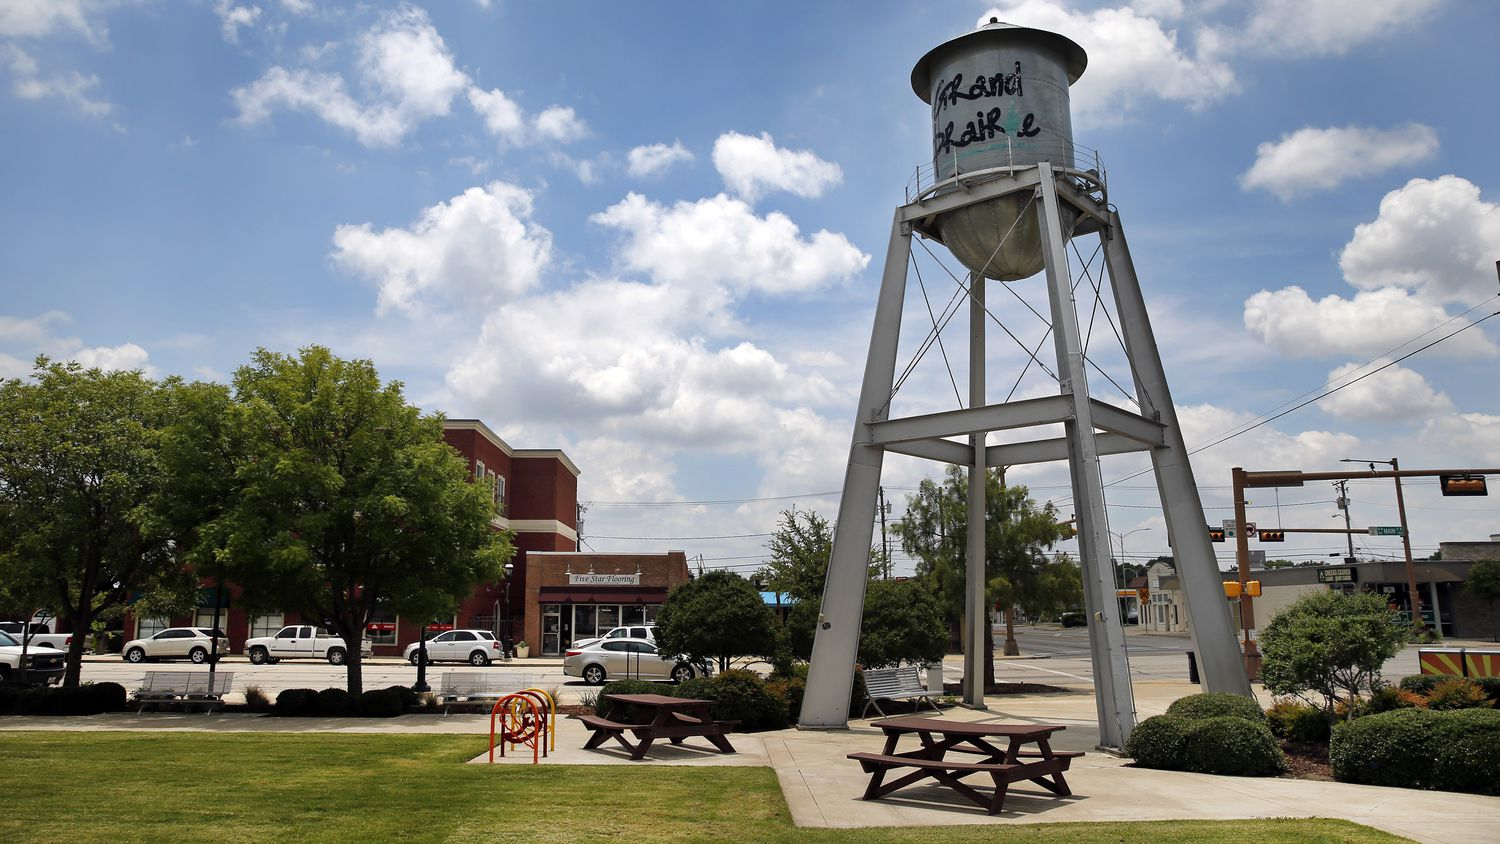 A small water tower stands at the Market Square on Main St. in downtown Grand Prairie, Texas, Thursday, June 25, 2020. (Tom Fox/The Dallas Morning News)